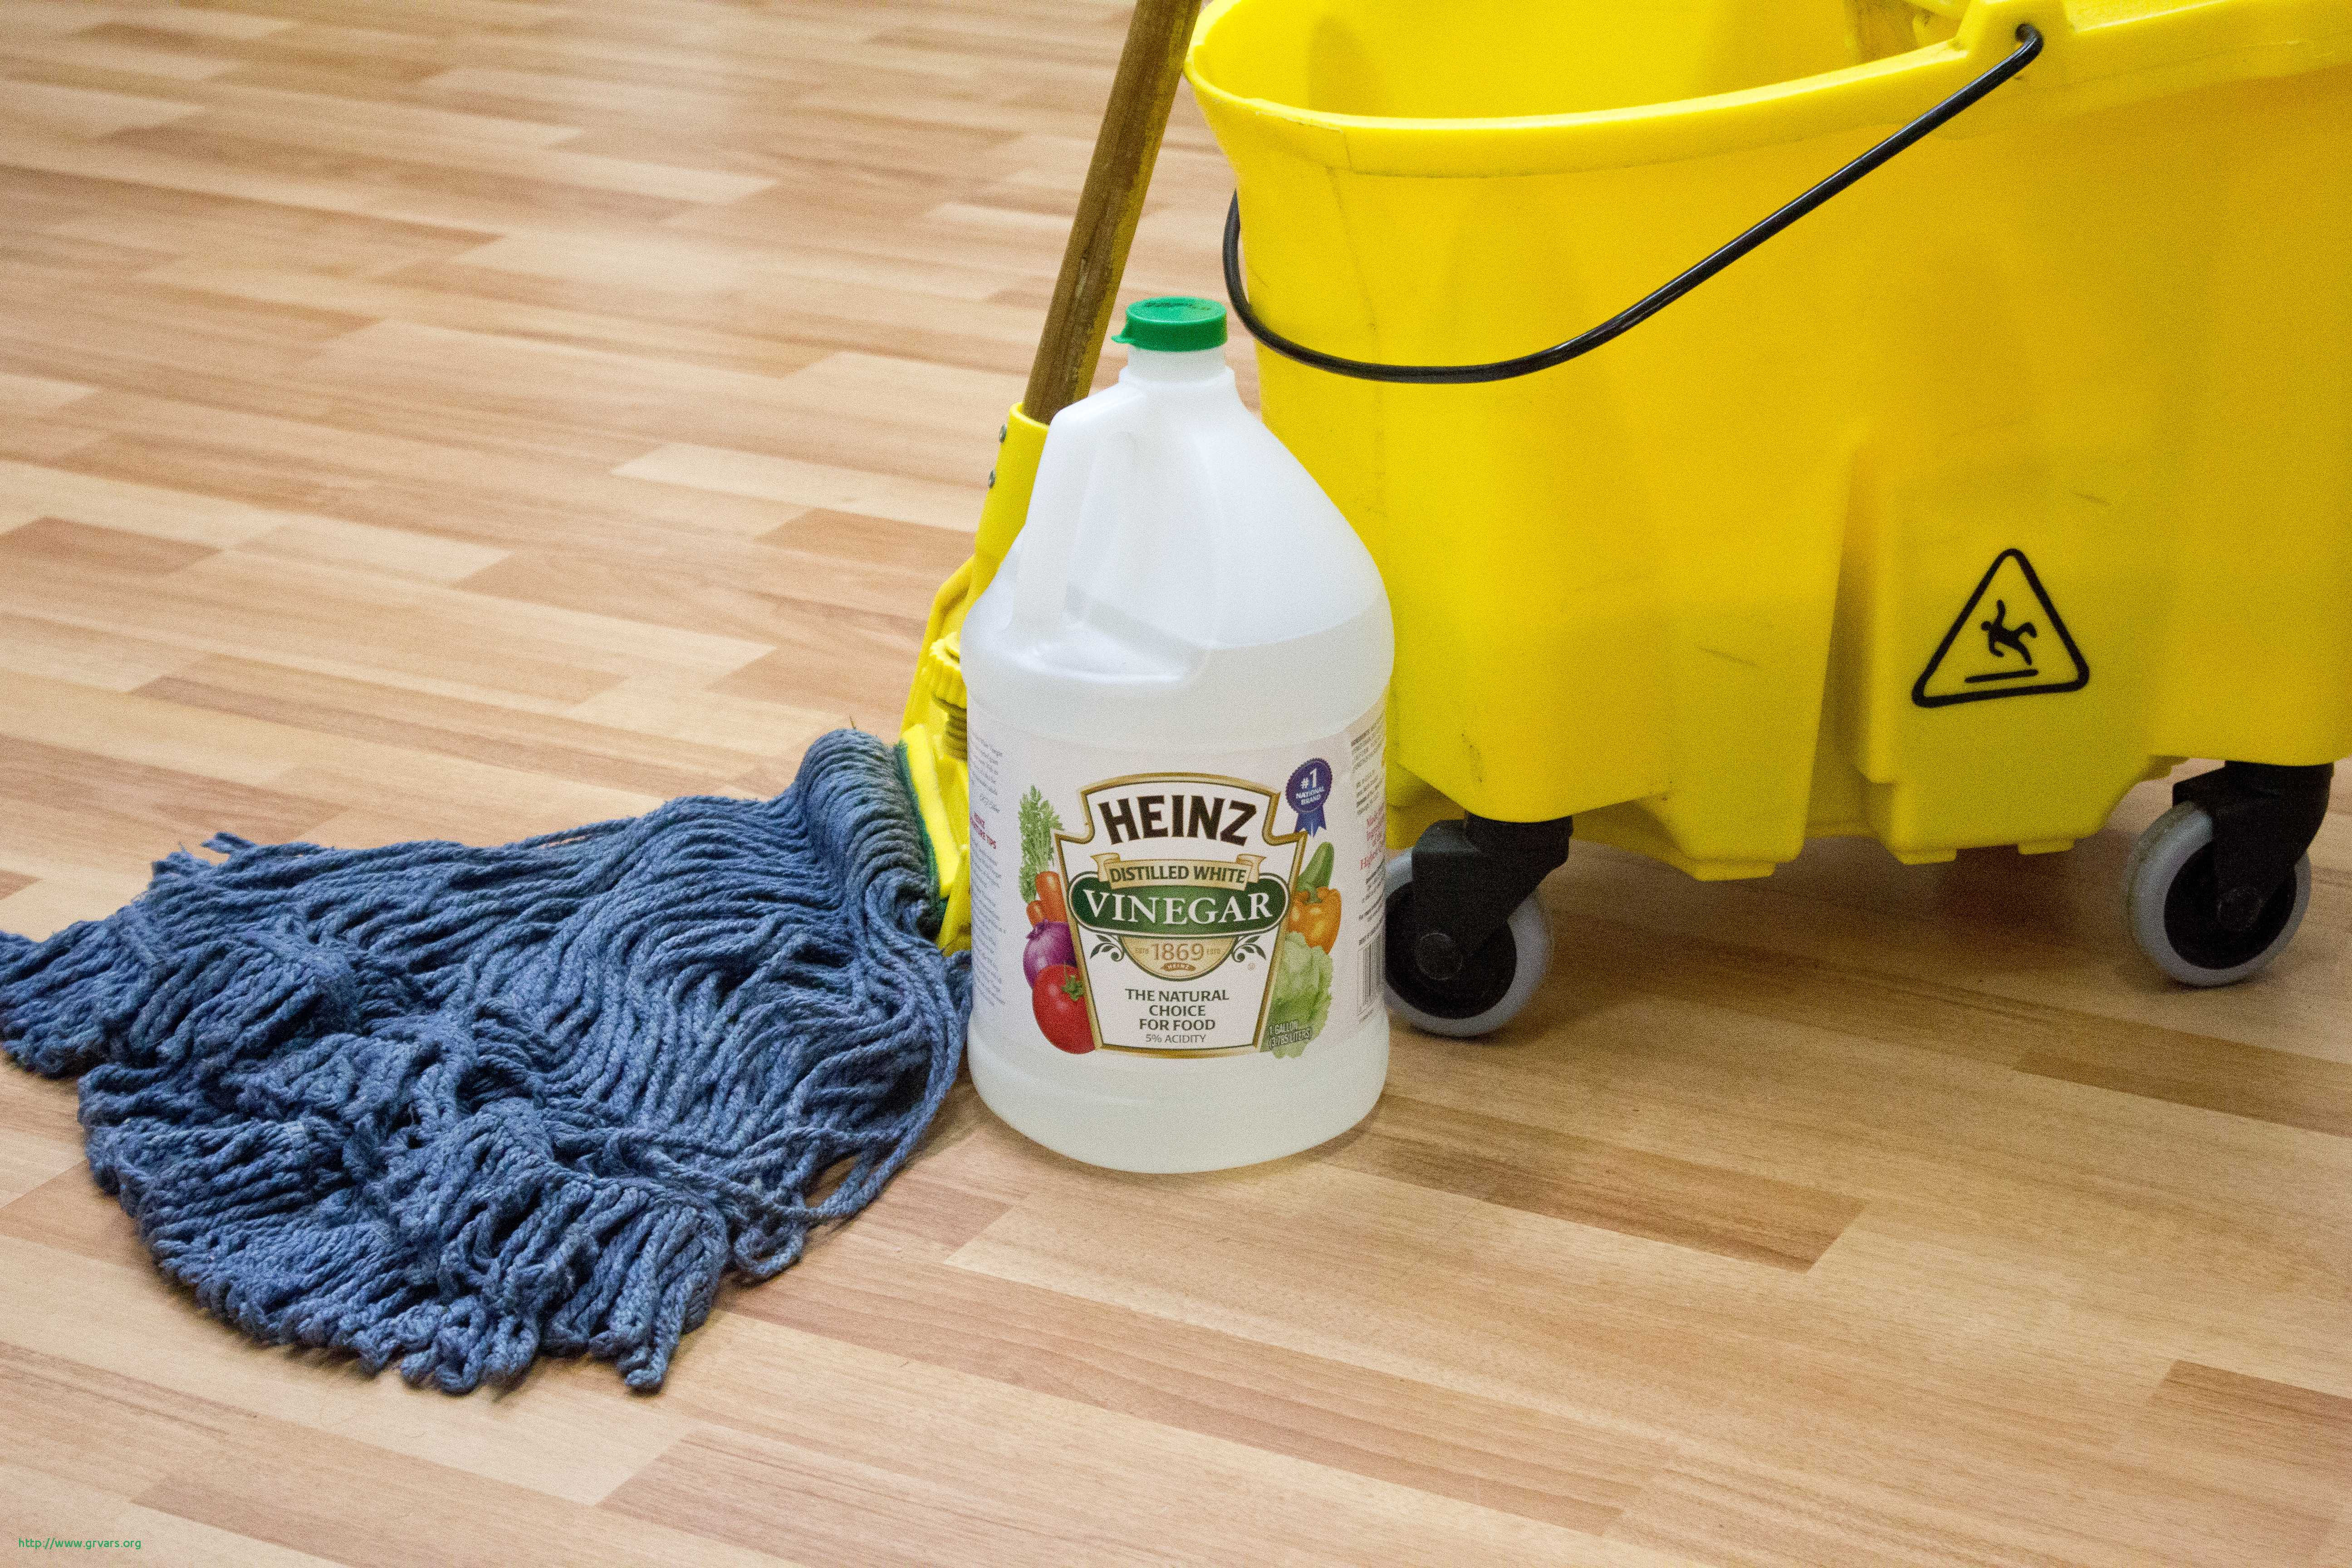 cleaning hardwood floors with vinegar and baking soda of 21 a‰lagant how to clean bathroom floor with vinegar ideas blog intended for cleaning bathroom tile floors vinegar fresh cleaning floors with white vinegar skill floor interior